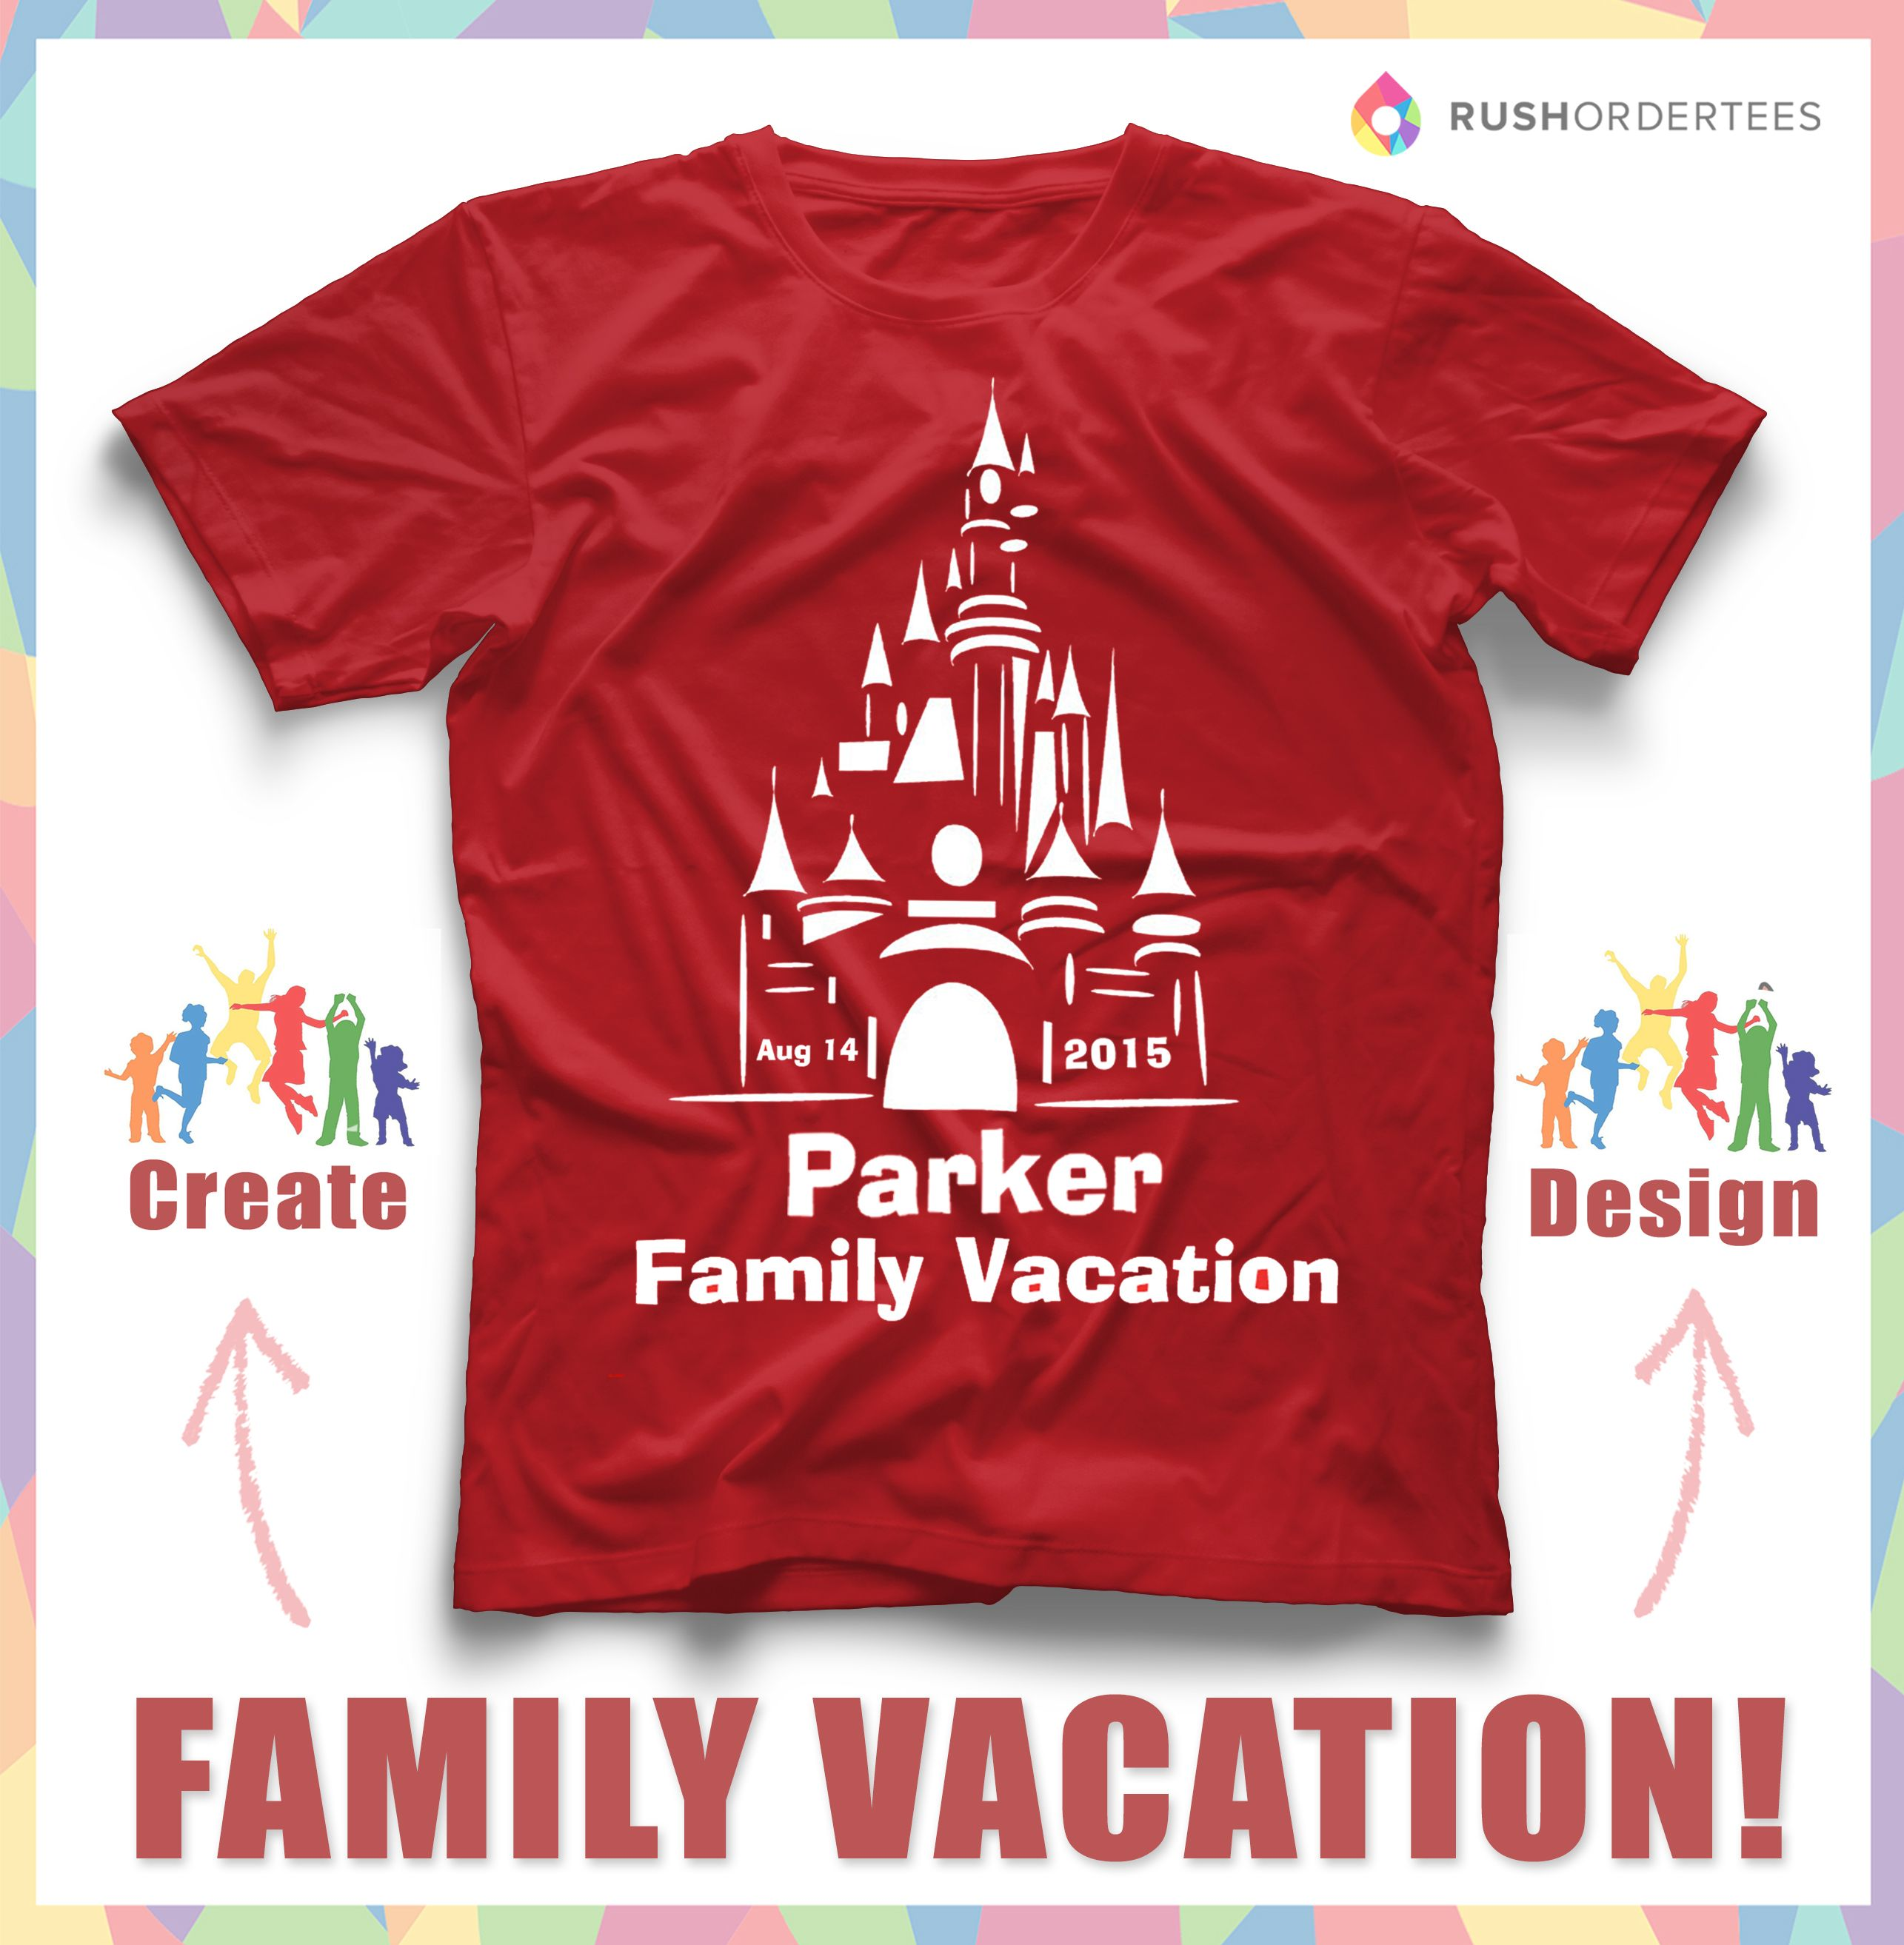 150ed6c6 Family vacation custom t-shirt design idea's! Create awesome vacation custom  t-shirts for your family next trip! Free Graphic Design!  www.rushordertees.com ...